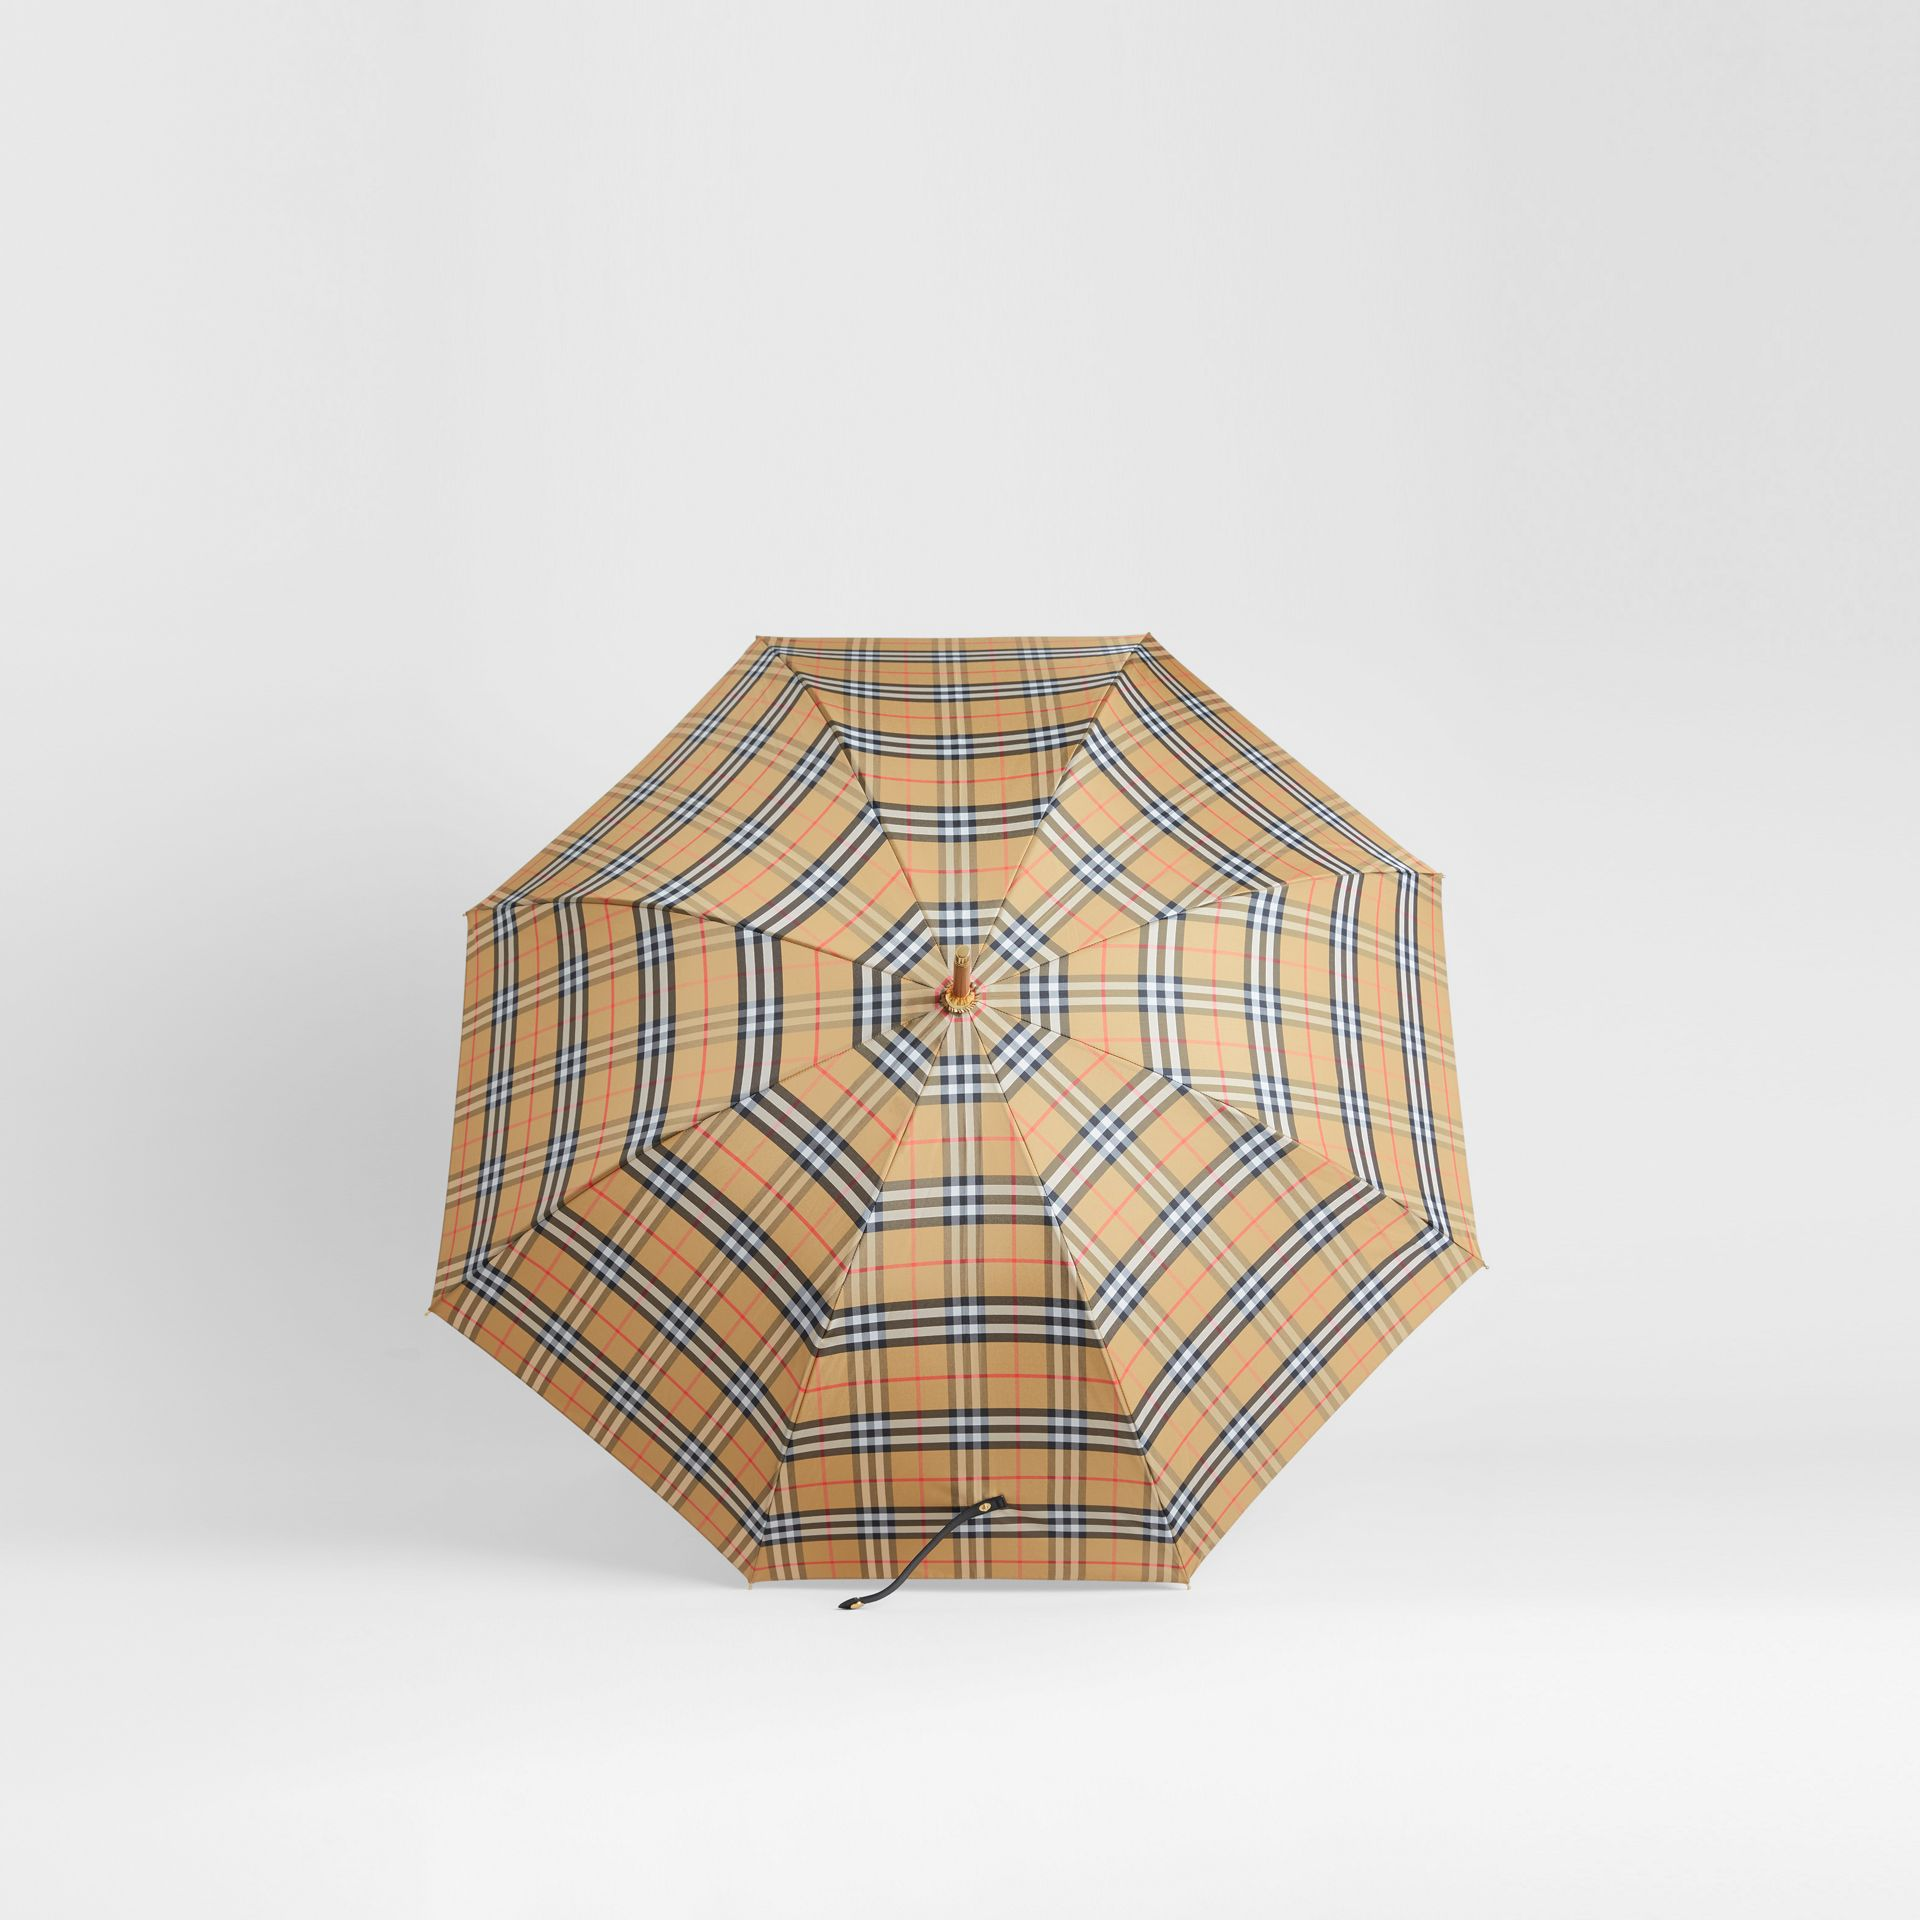 Parapluie canne à motif Vintage check (Jaune Antique/noir) | Burberry Canada - photo de la galerie 2